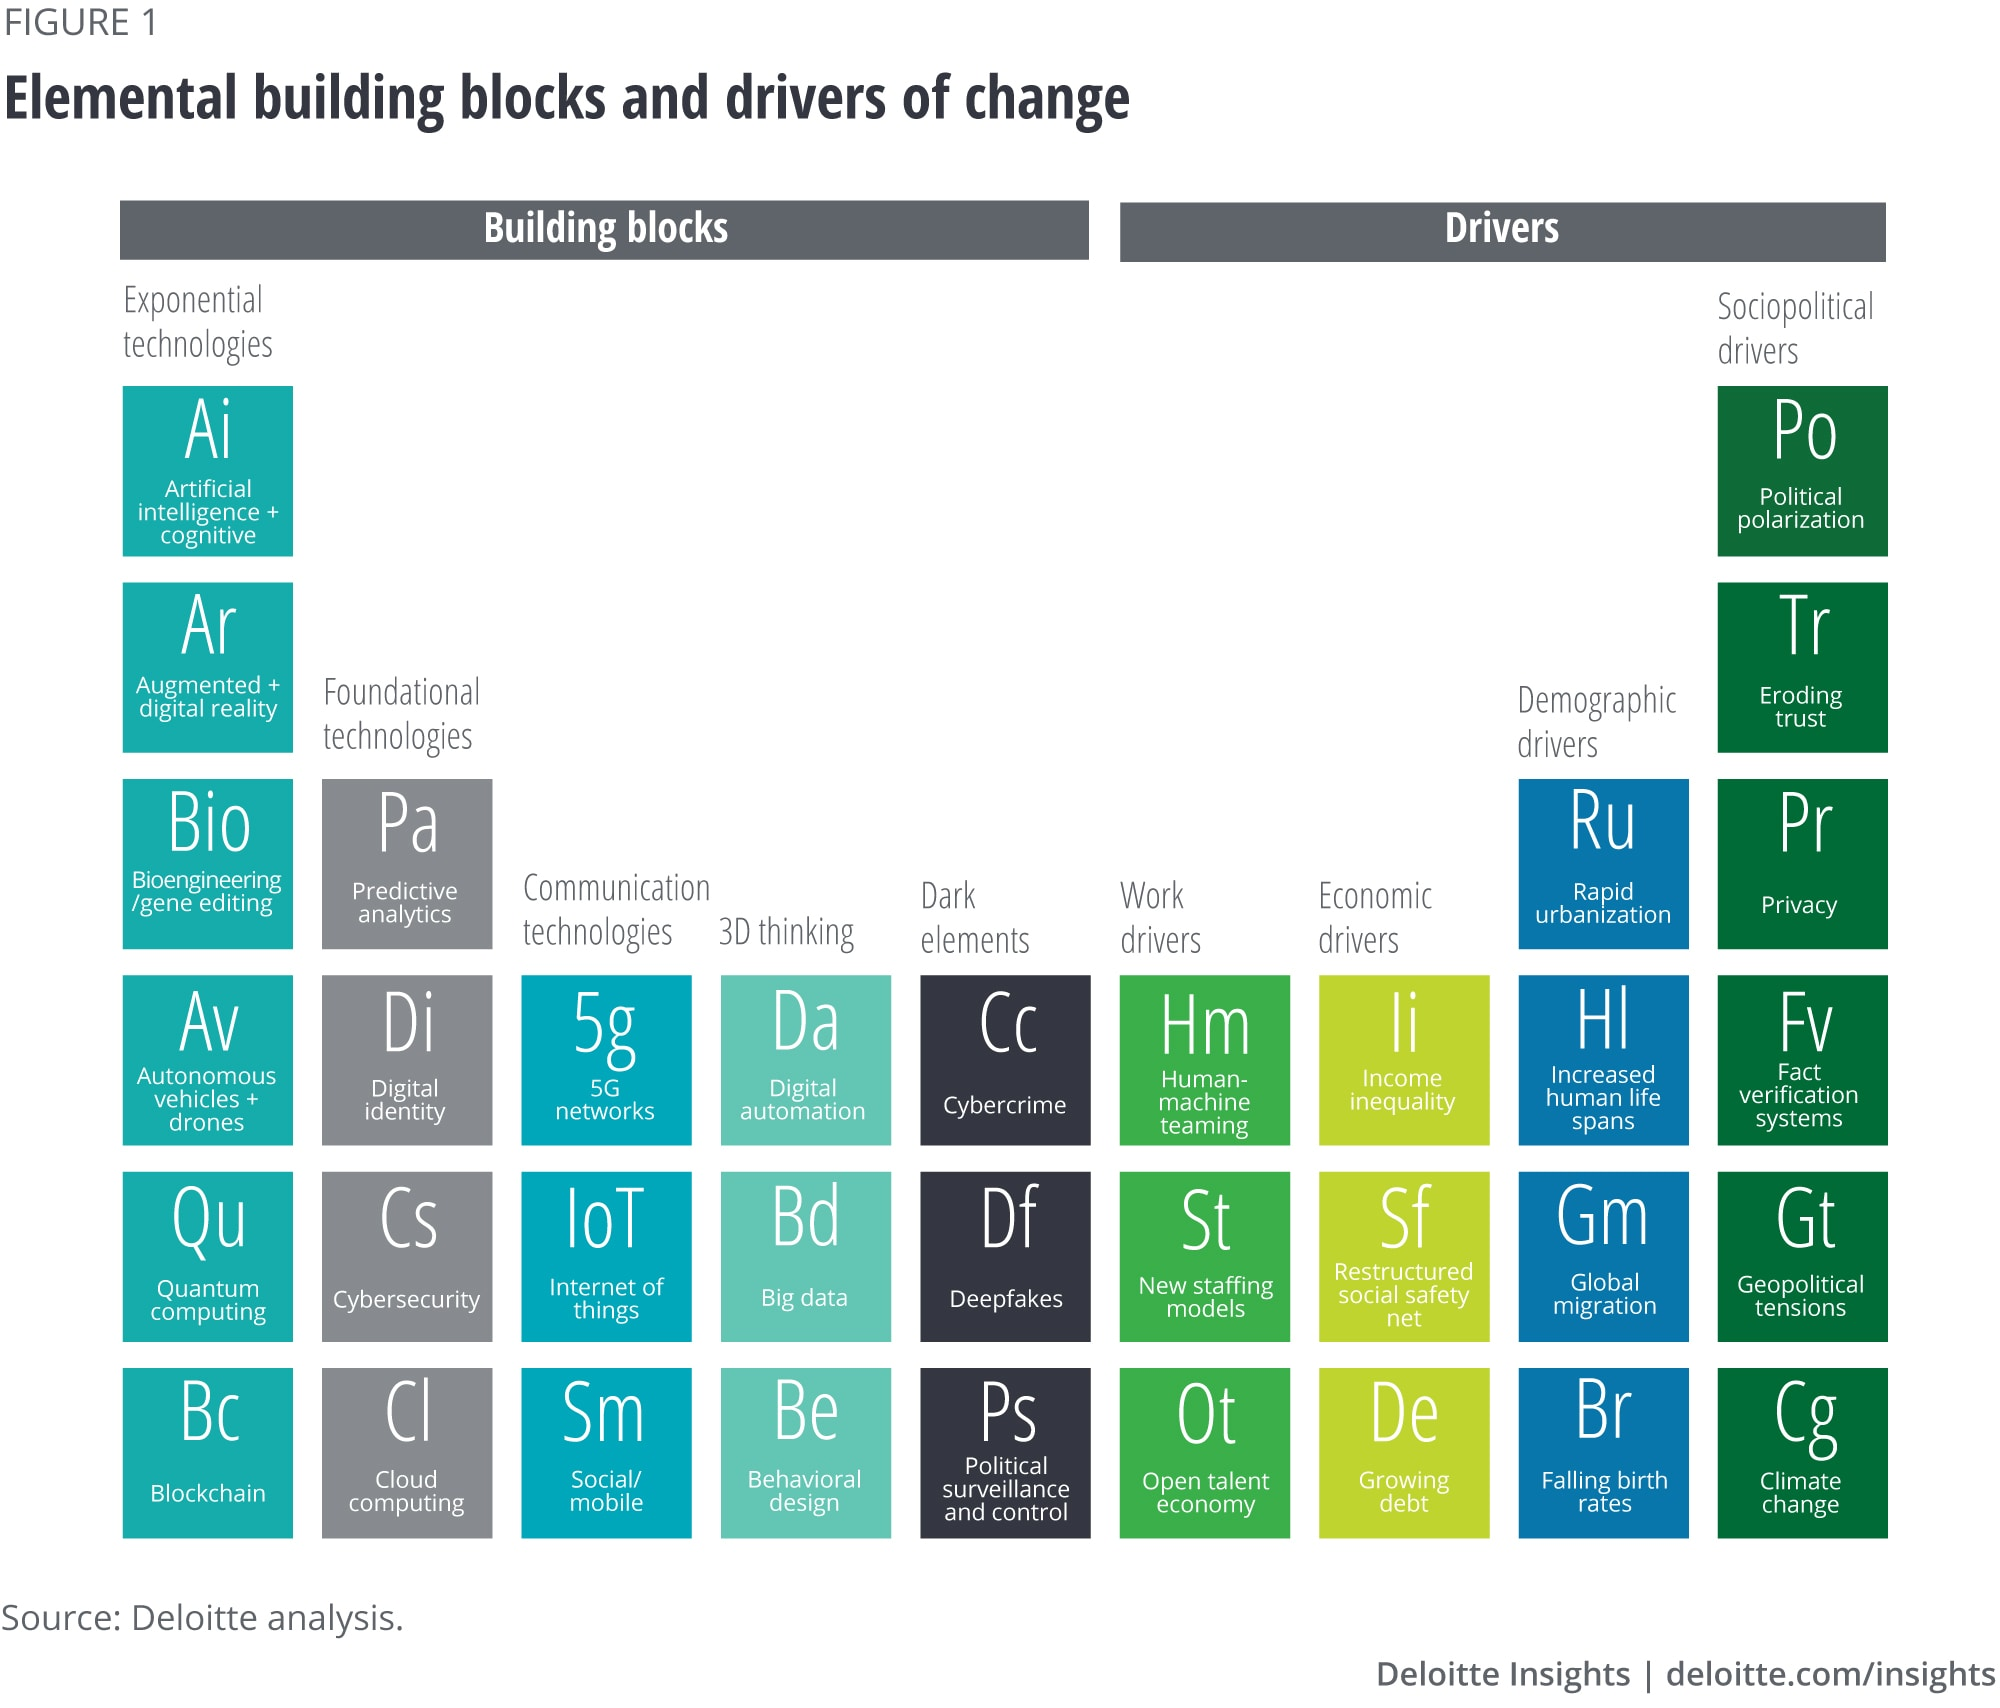 Elemental building blocks and drivers of change